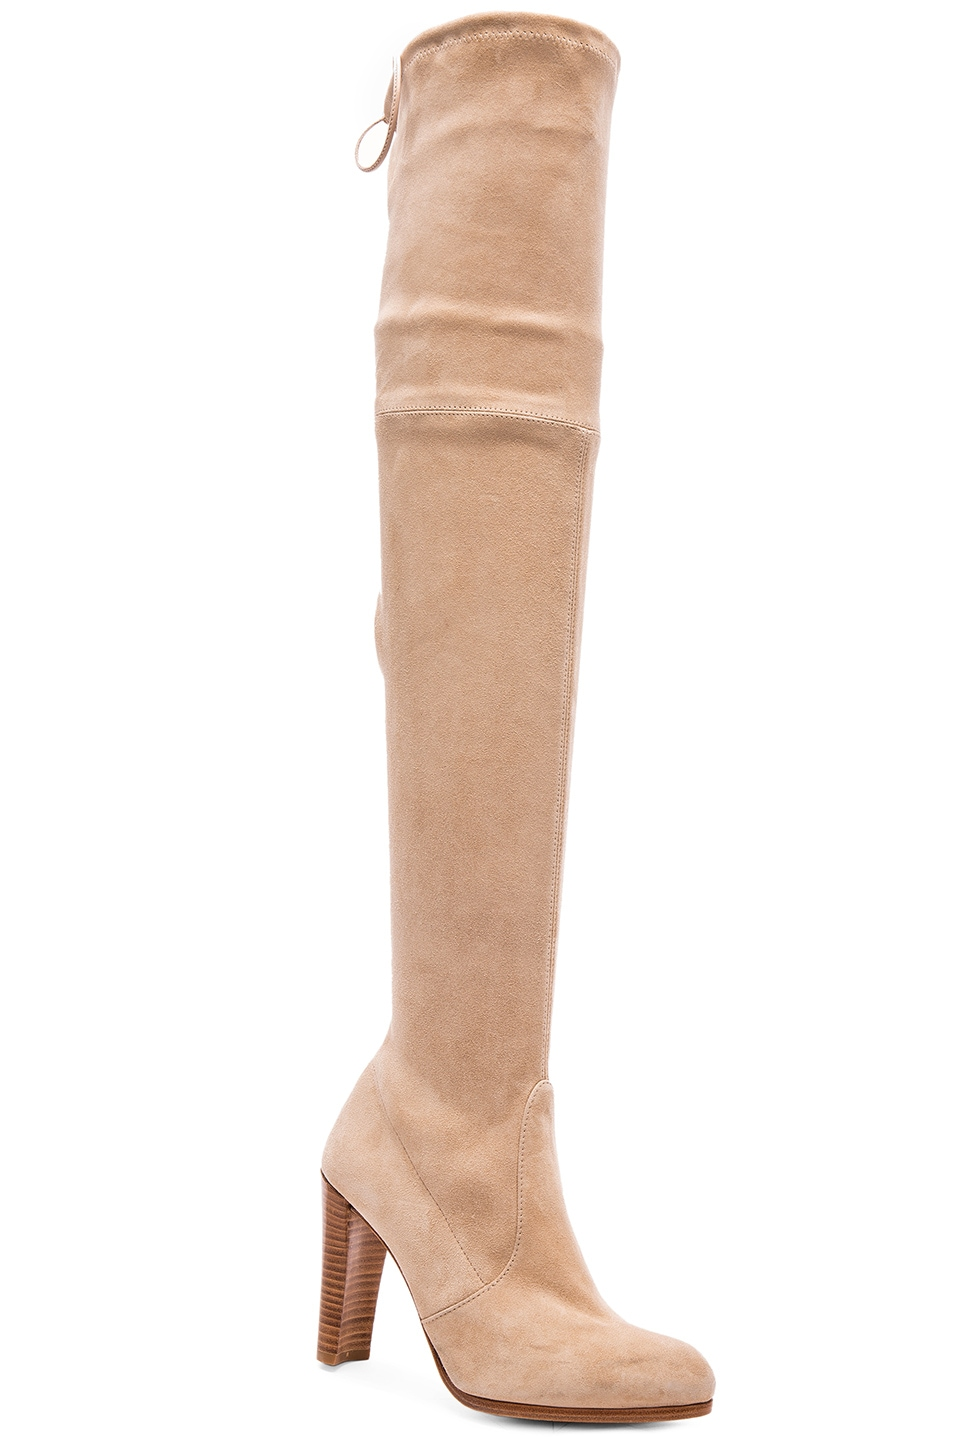 Image 2 of Stuart Weitzman Highland Suede Boots in Buff Suede